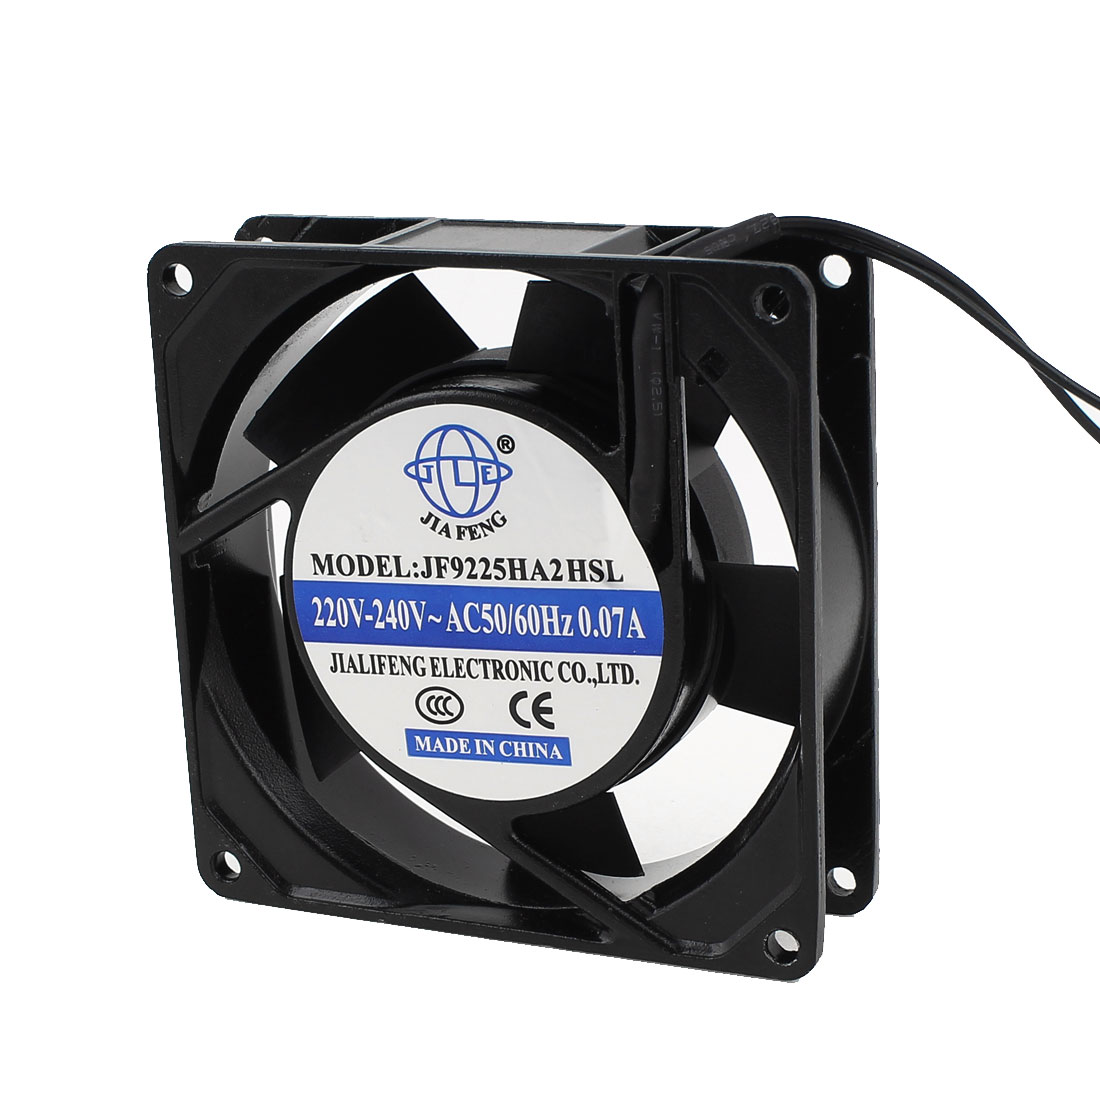 AC 220V-240V 0.07A 2 Wires Sleeve Bearing Axial Cooling Fan 92mm x 25mm 9225